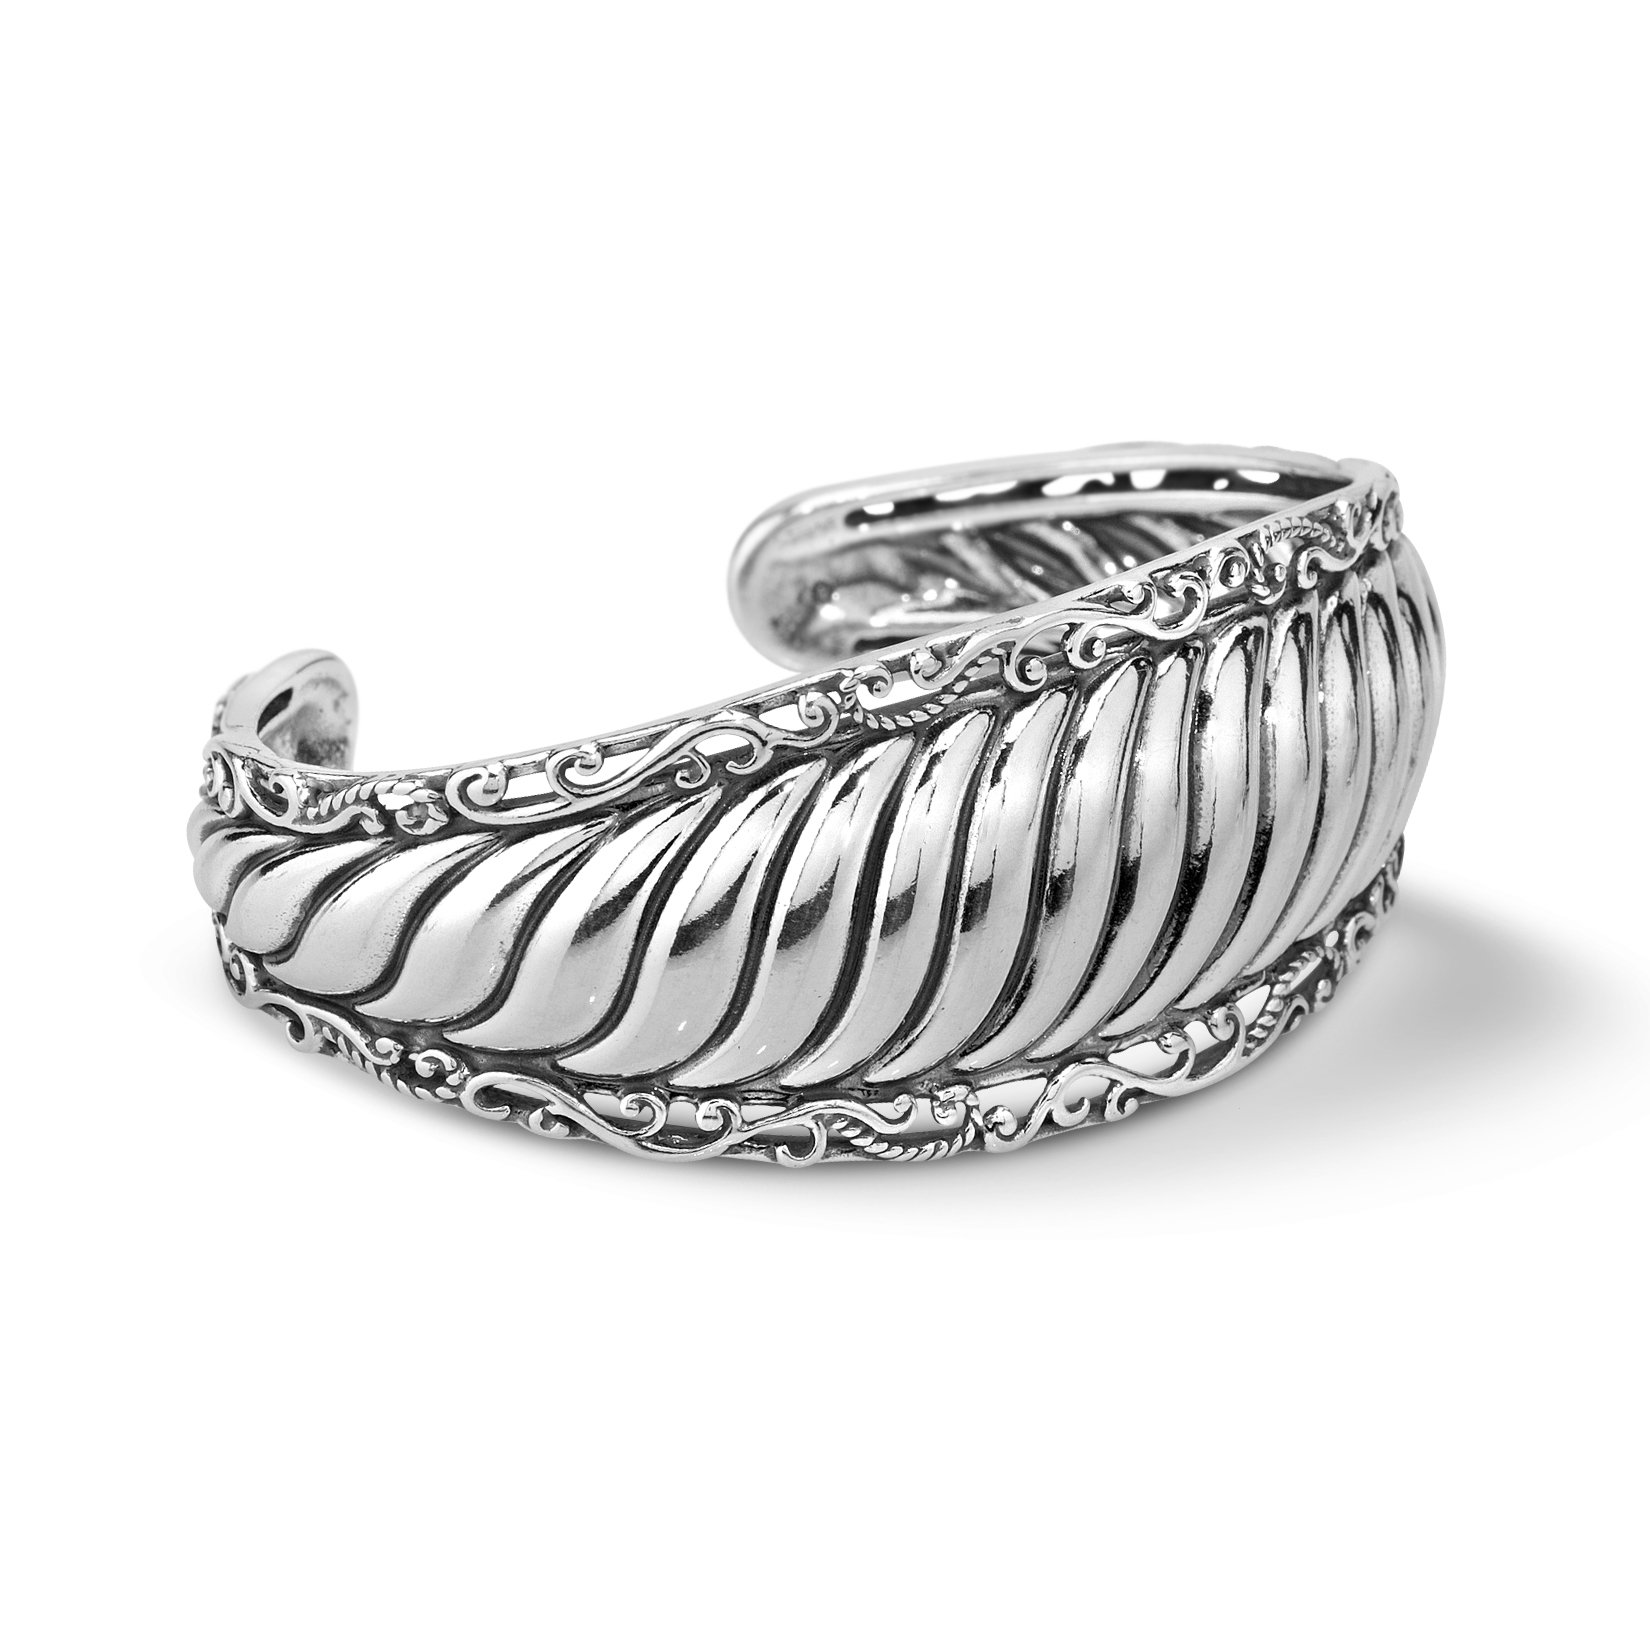 Carolyn Pollack Signature Genuine .925 Sterling Silver Ribbed Cuff Bracelet